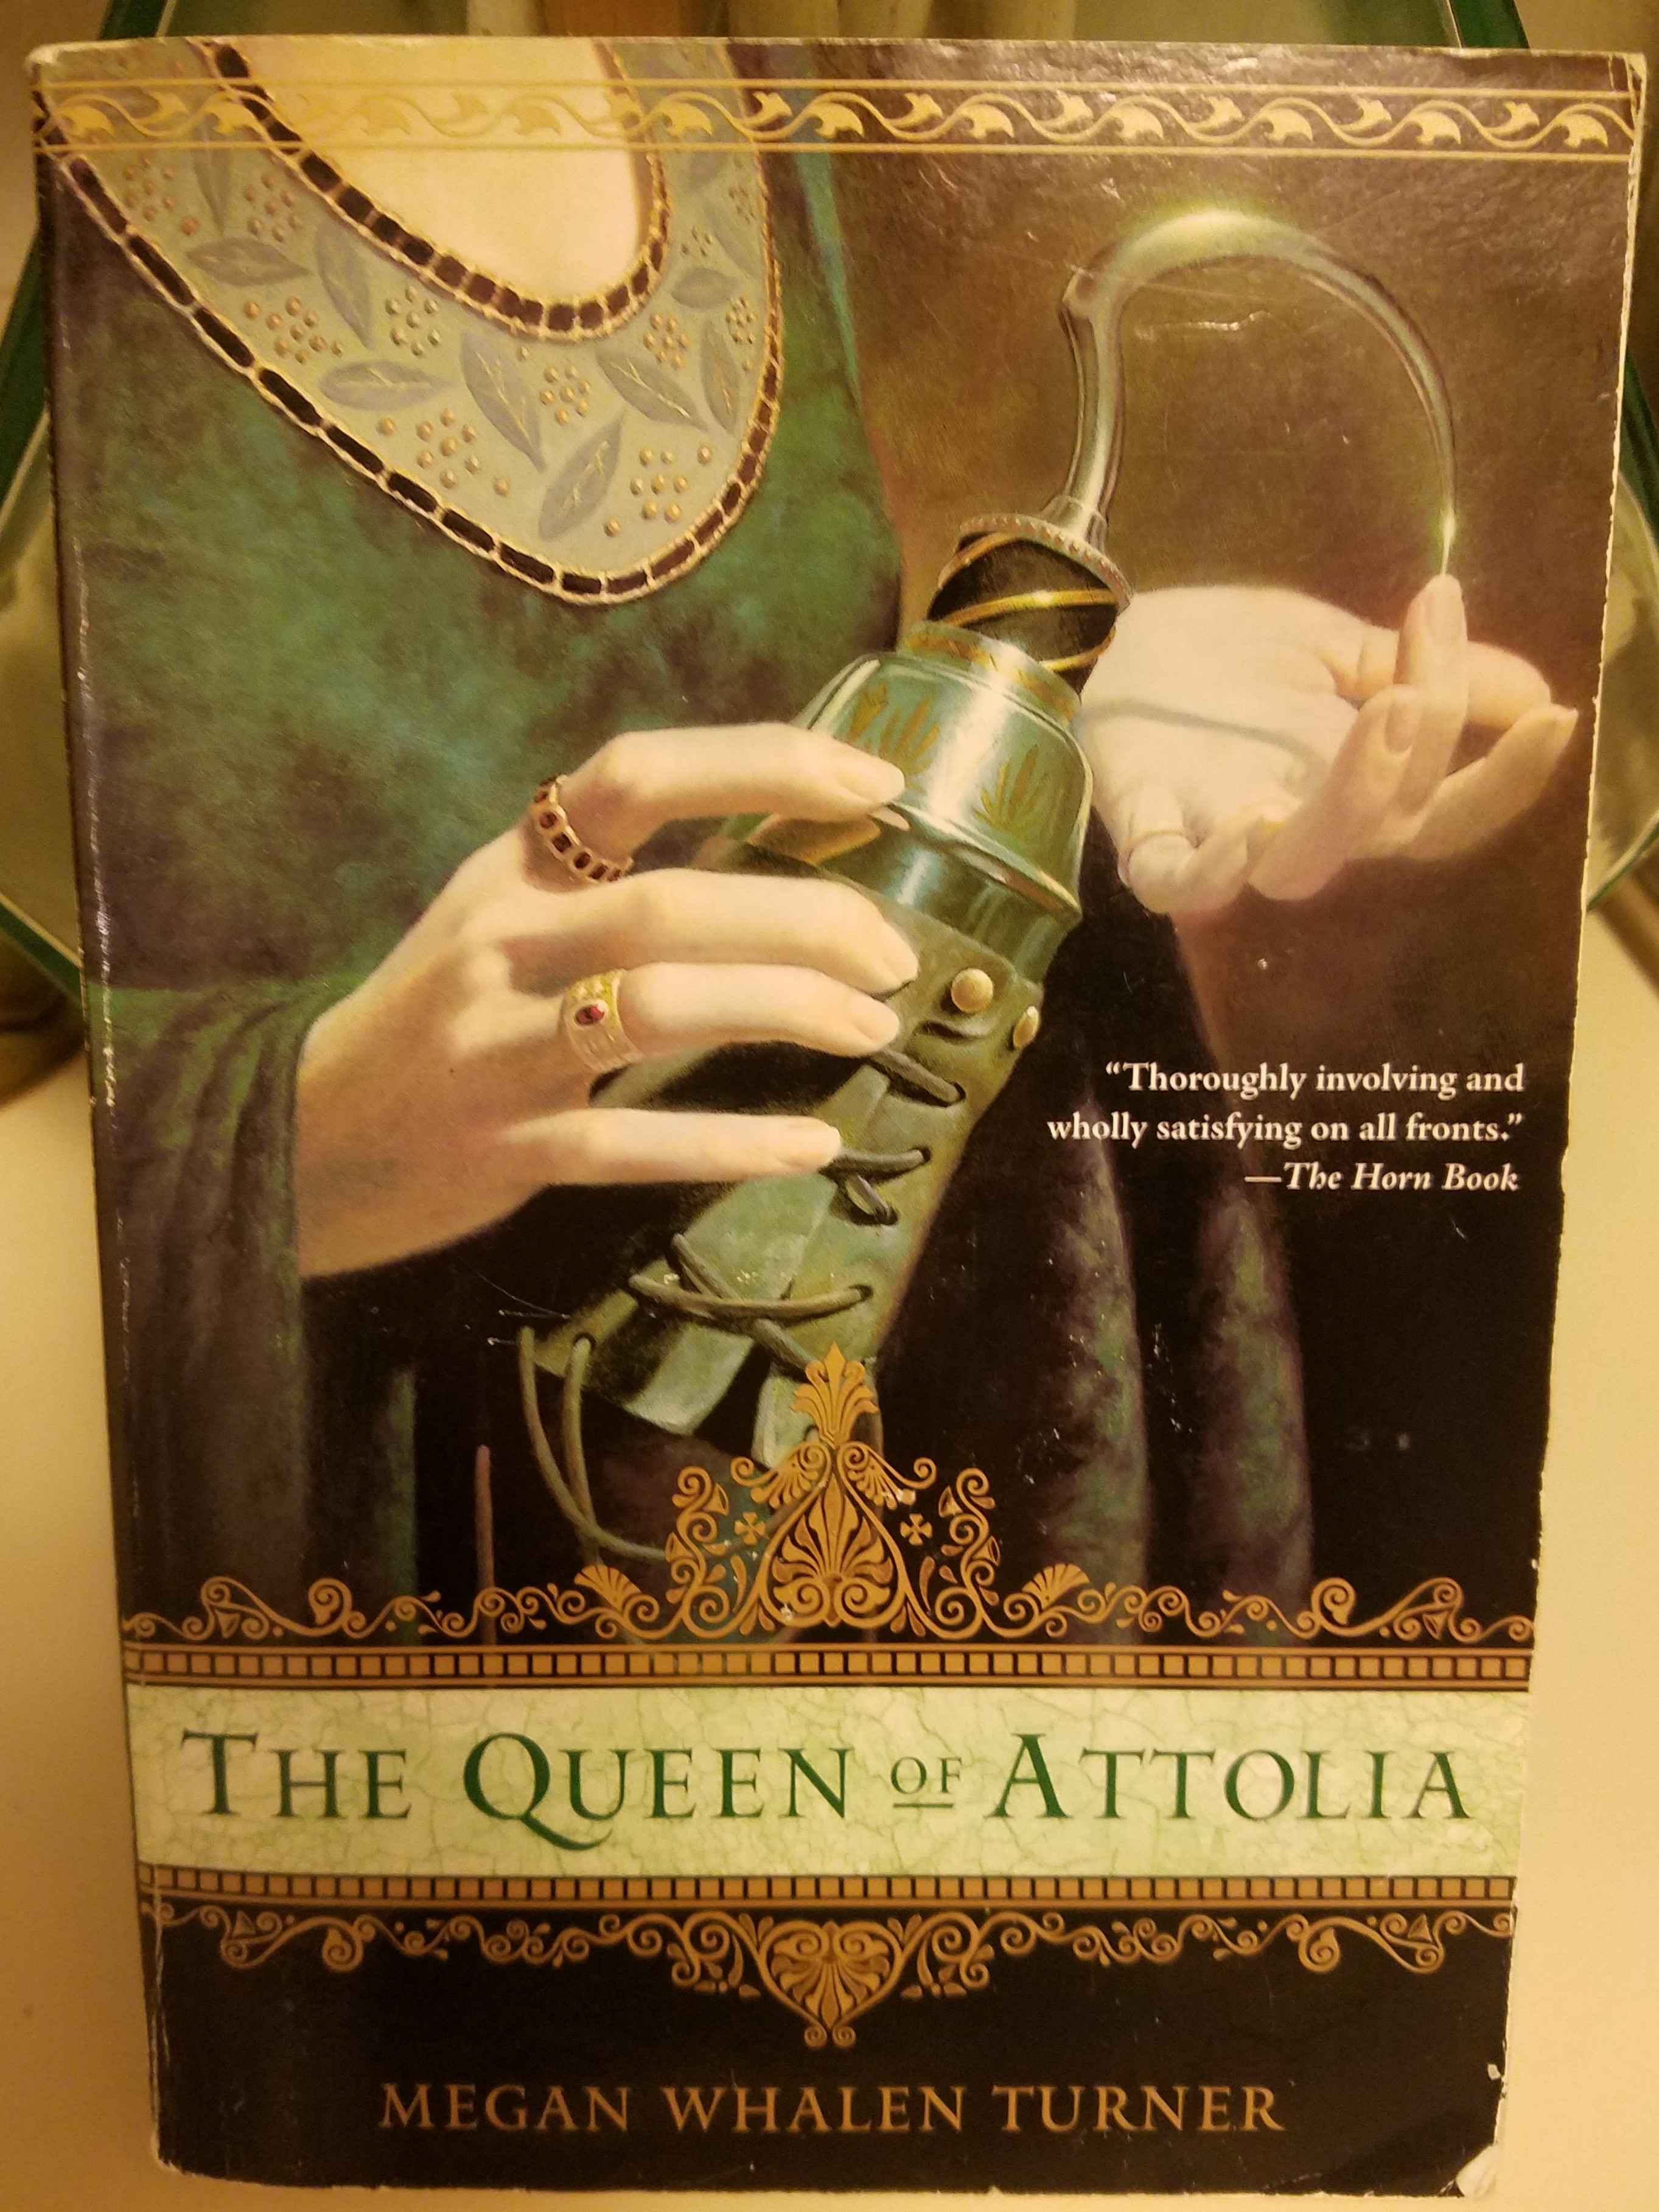 Image description: Book cover for The Queen of Attolia by Megan Whalen Turner. The cover shows the hands and torso of a woman wearing in a medieval-style dress. She is holding a prosthetic hook.